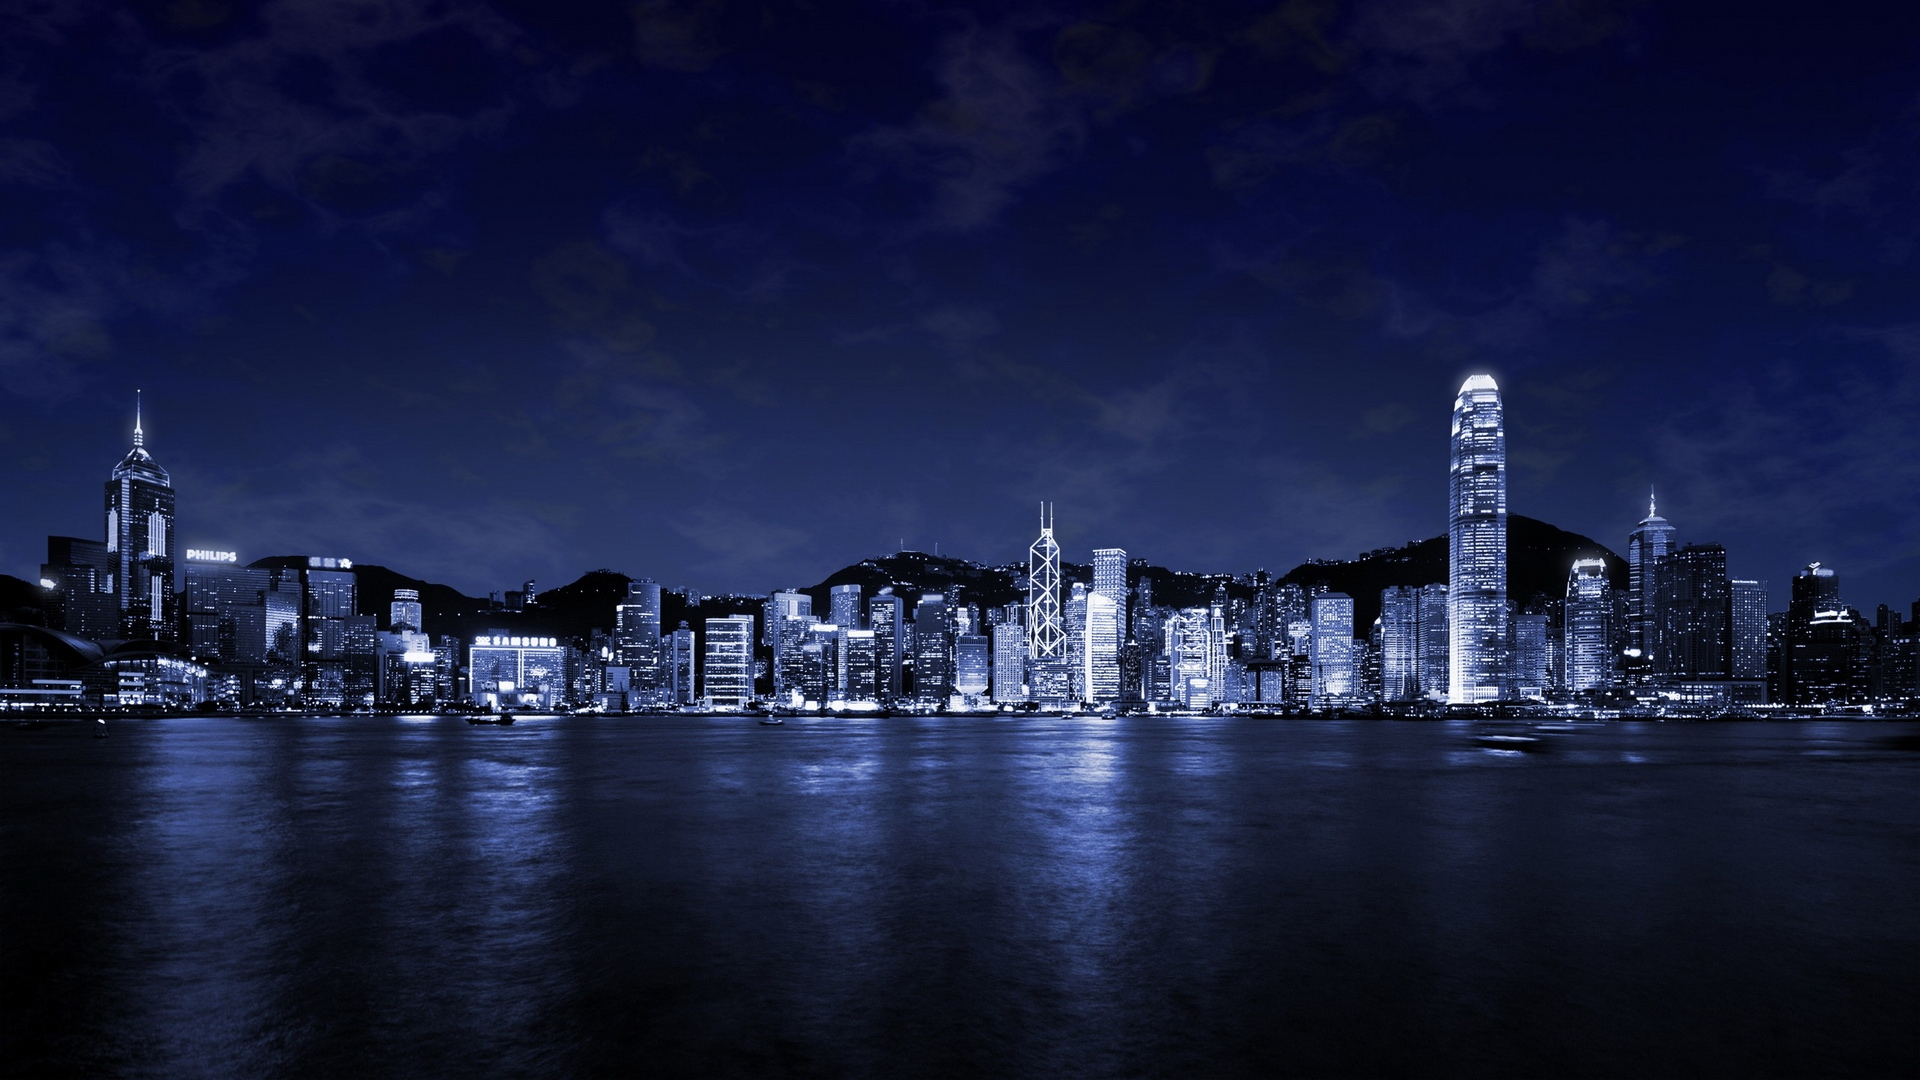 Night City Wallpaper Desktop Image 1920x1080